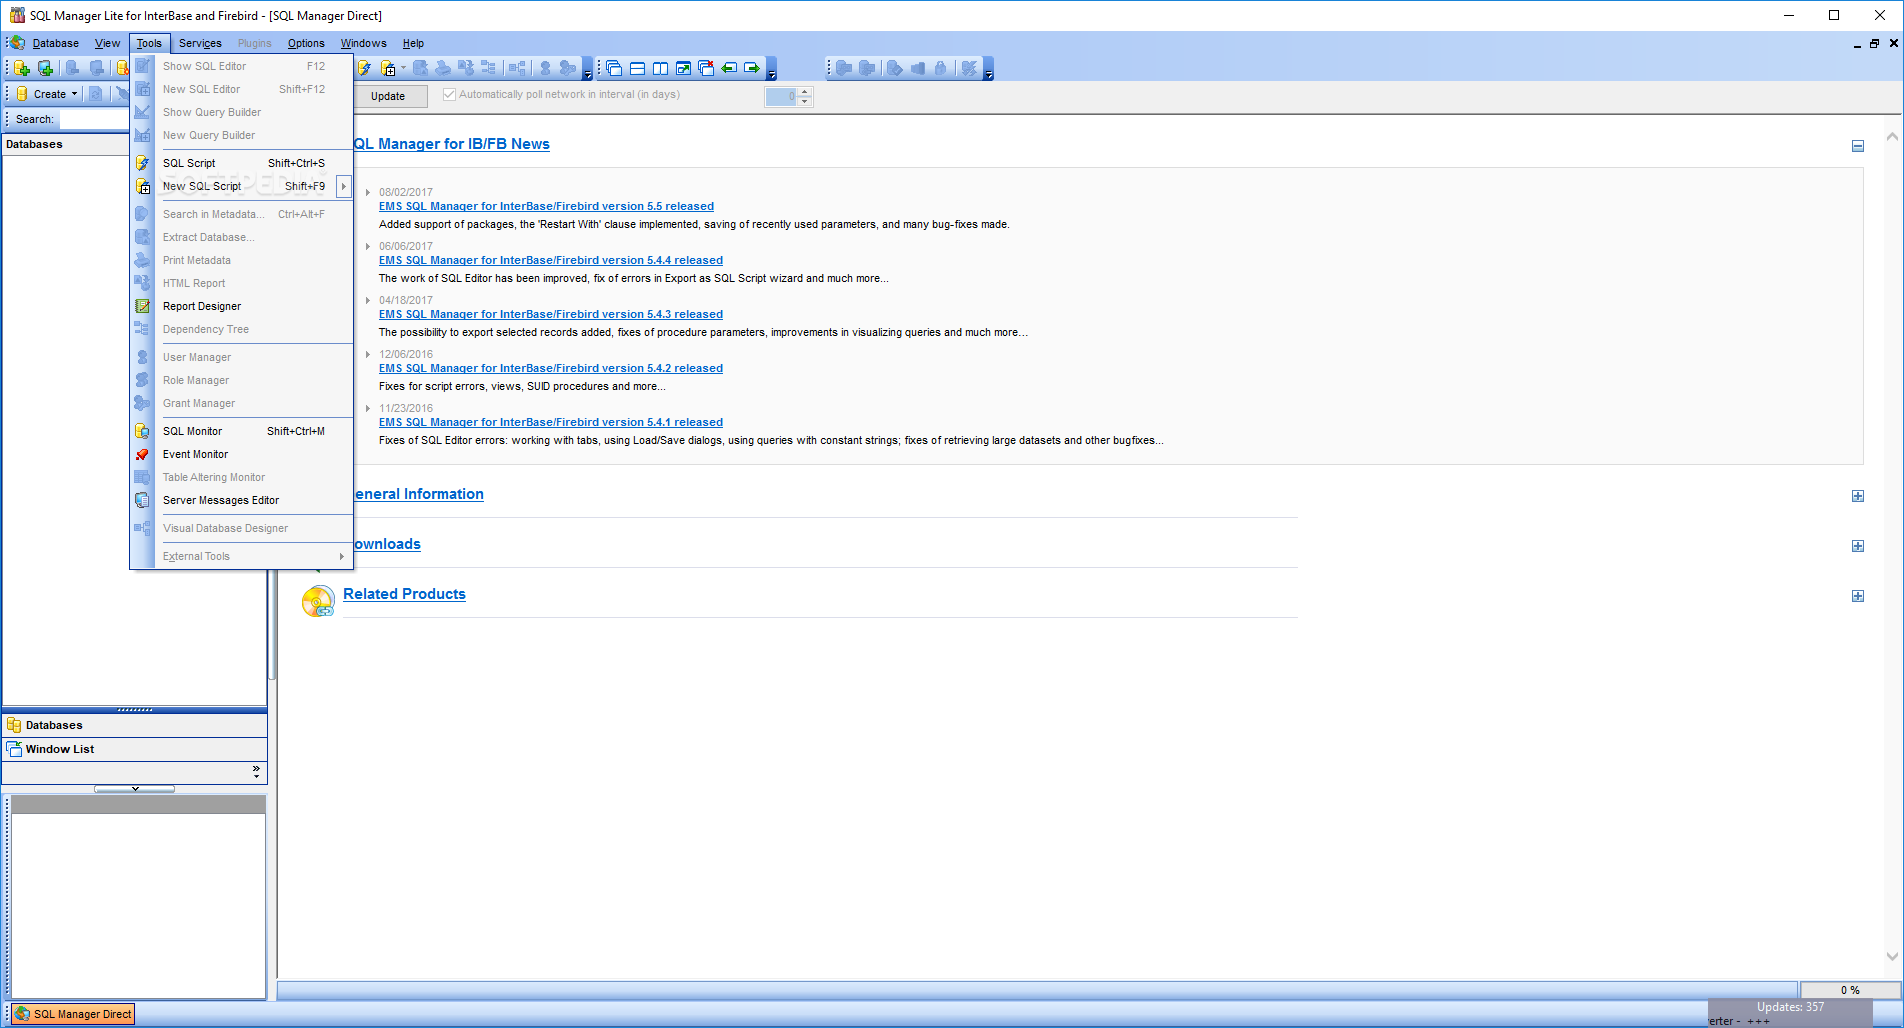 SQL Manager Lite 2010 For Interbase/Firebird